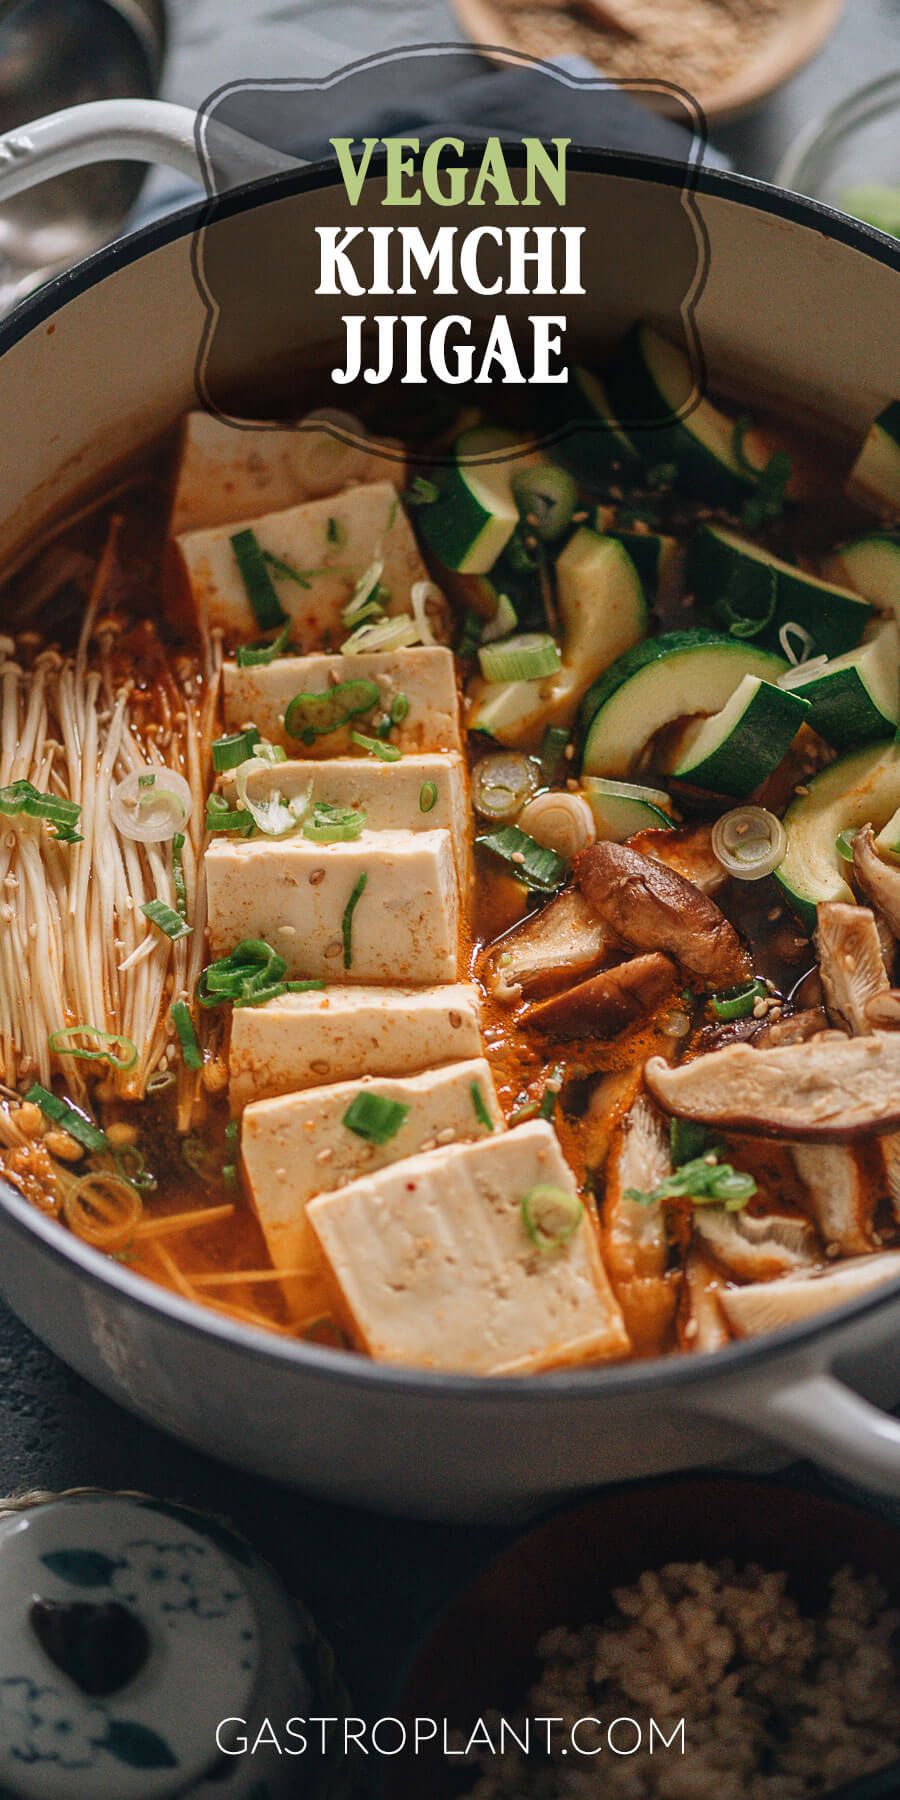 Vegan kimchi jjigae (stew) with tofu and mushrooms